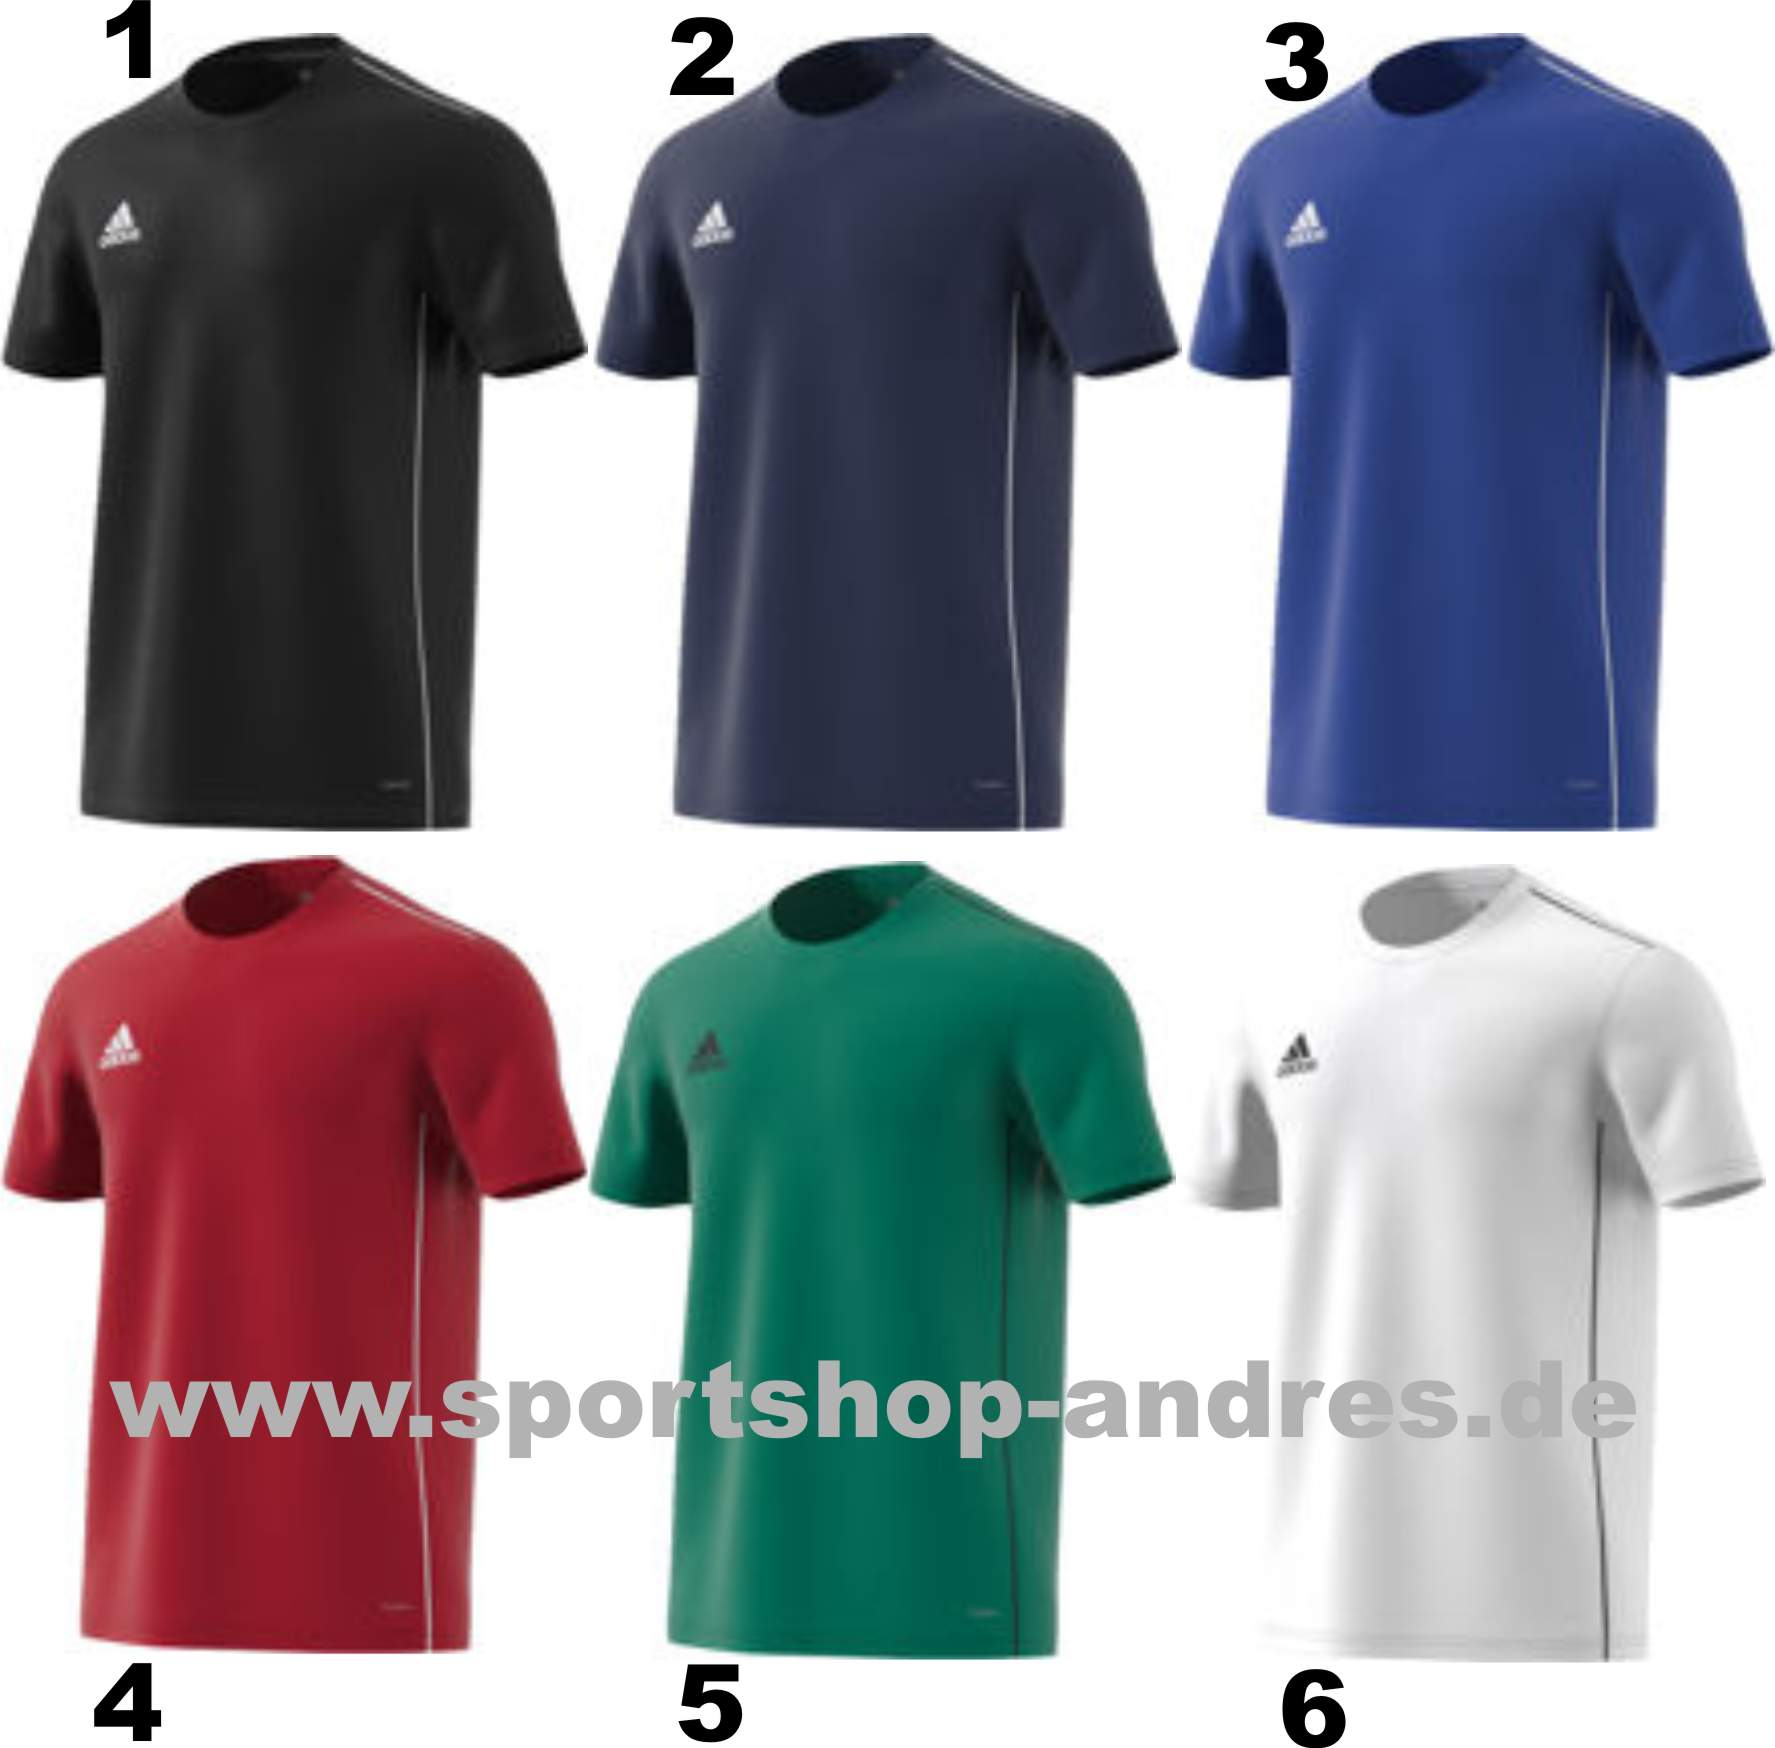 9d722fb3064 Sportshop Andres - Adidas Core 18 Training Jersey für Kinder ab 10 ...